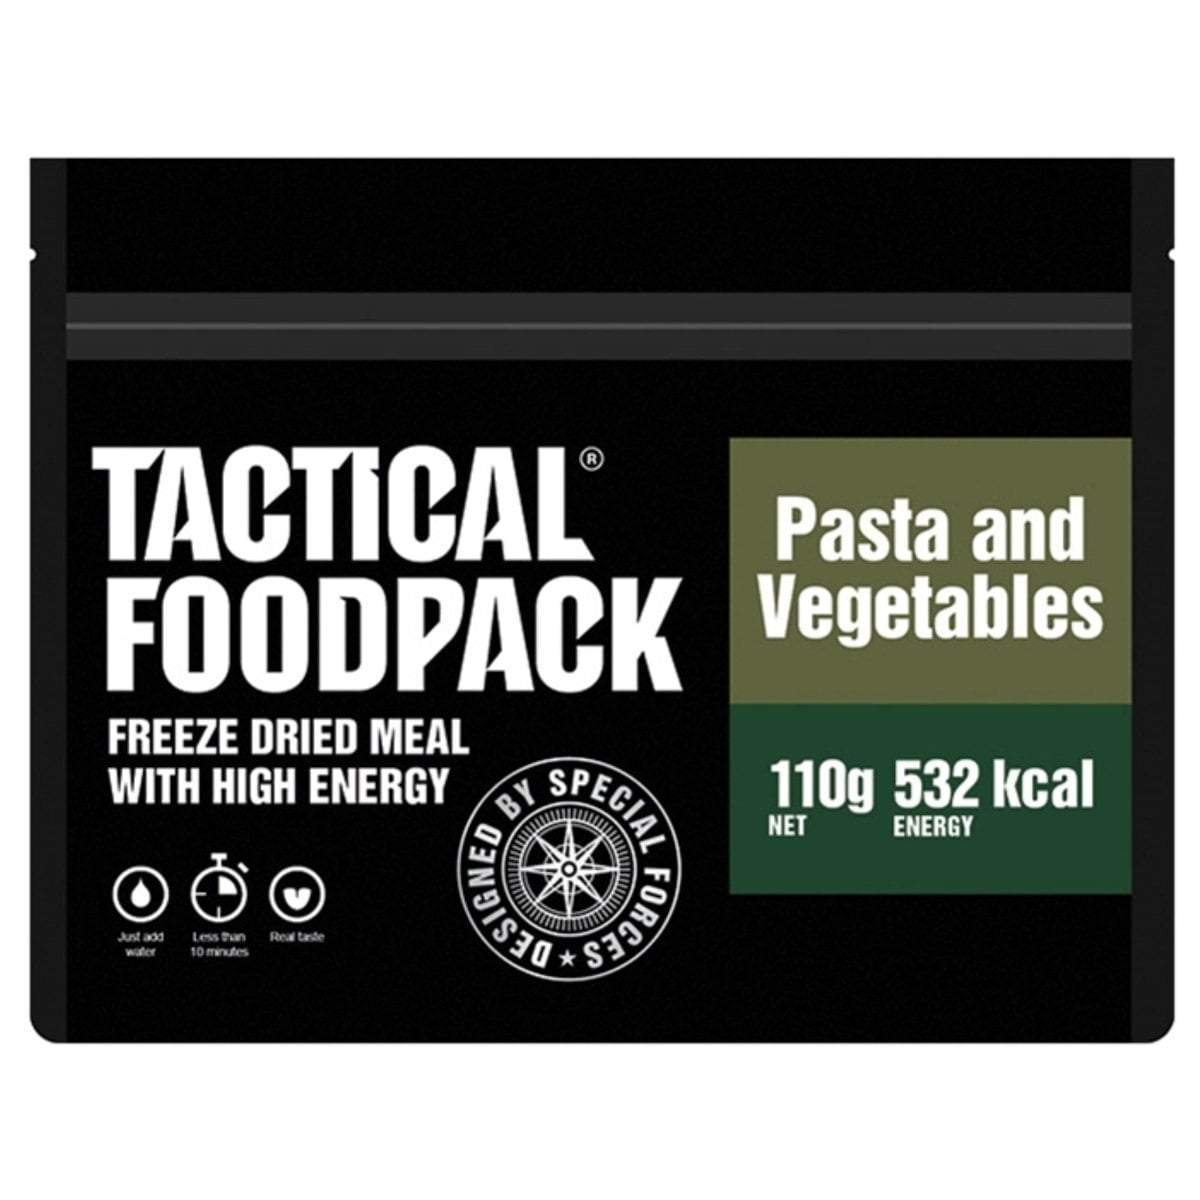 Tactical Foodpack Vegetables & Pasta | UKMCPro